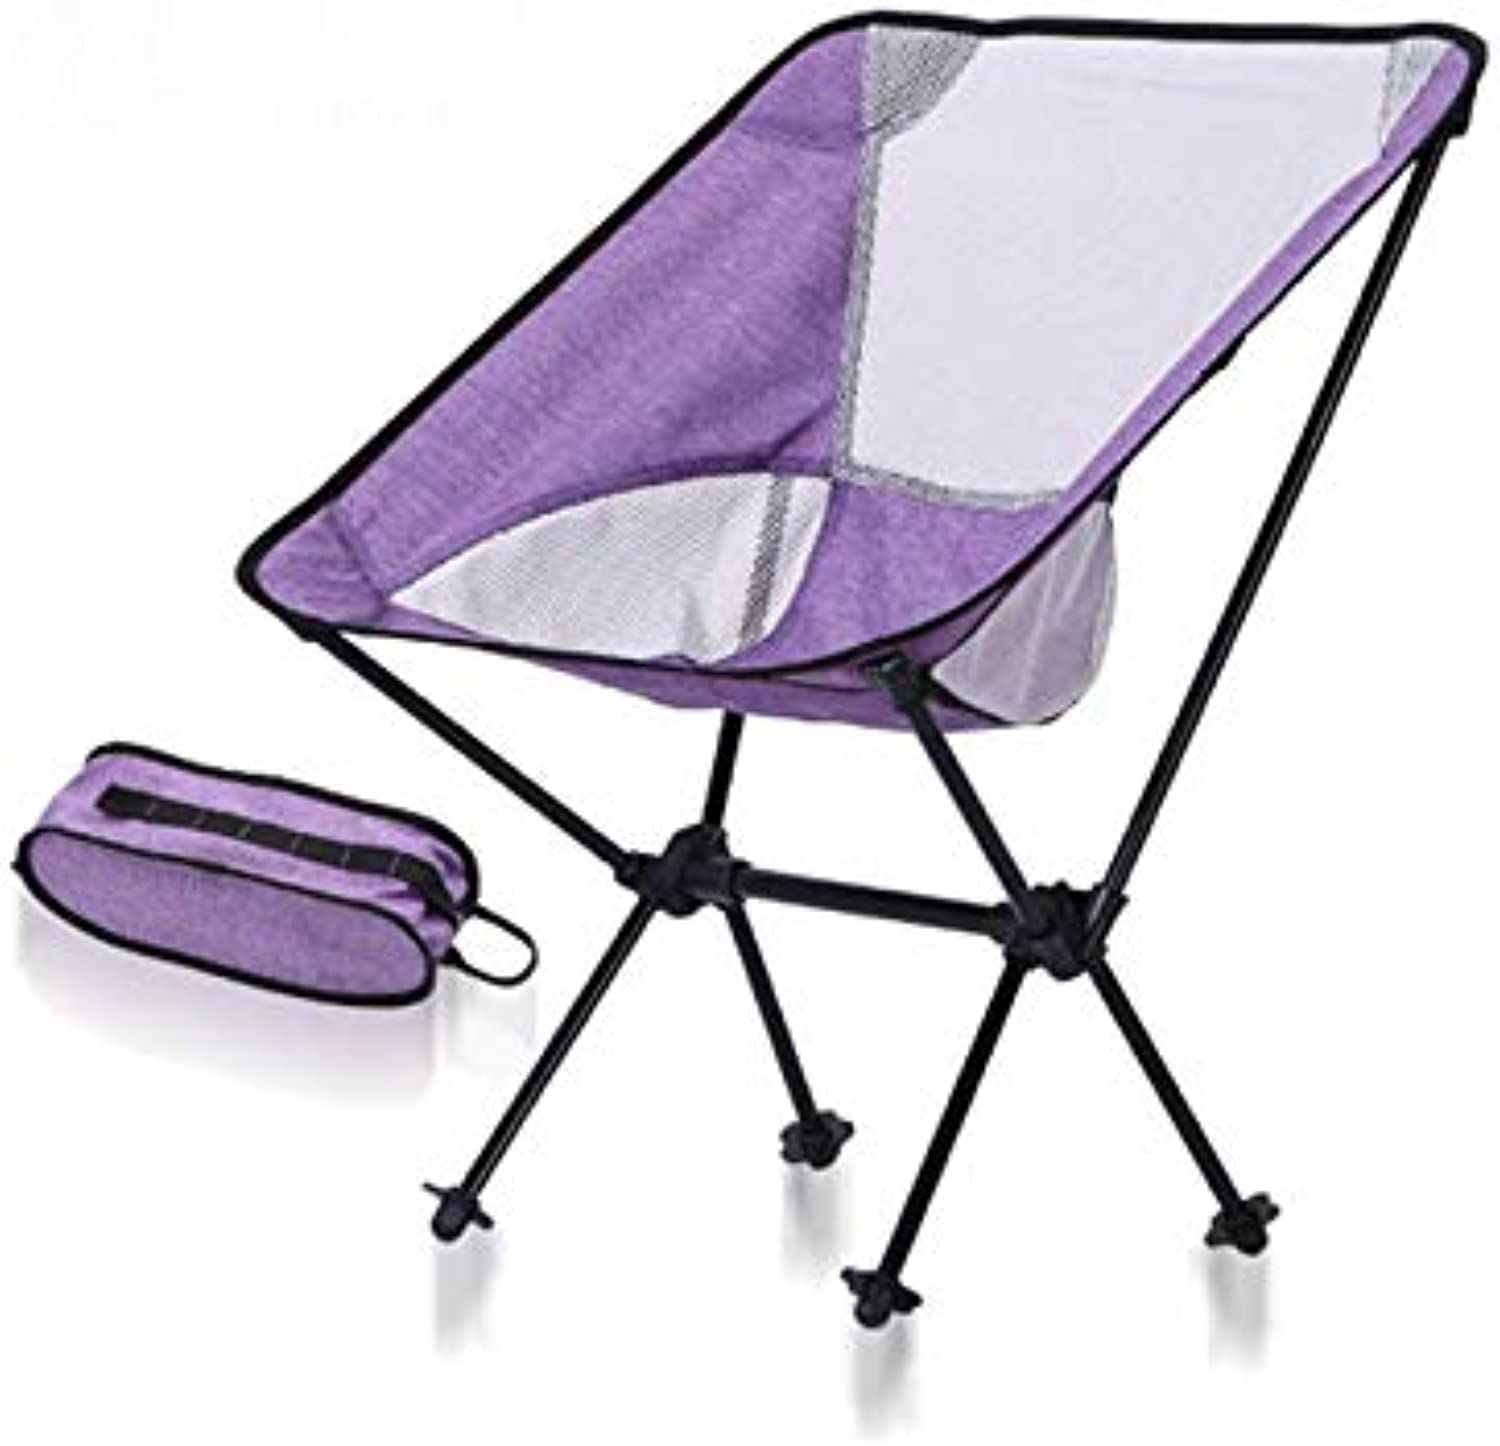 Compact Camping Chair Ultralight Portable Folding Backpacking Chair Summer Camping Super Breathable-bluee Purple,Purple